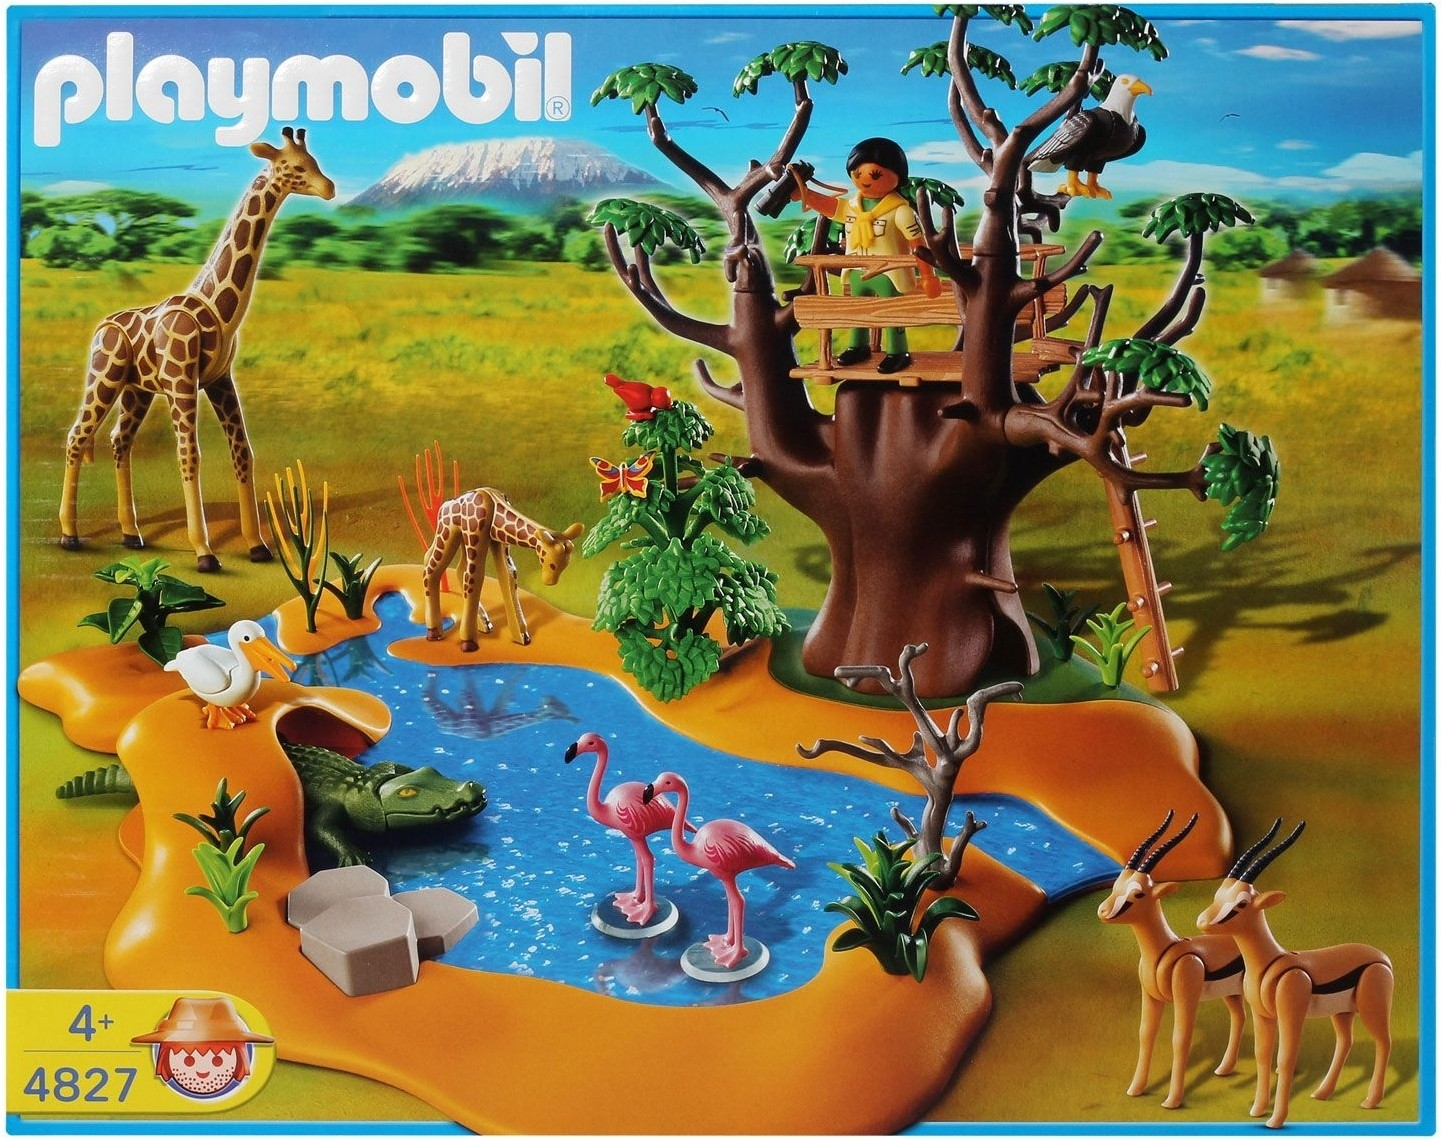 playmobil wild life waterhole wild life waterhole shop for playmobil products in india toys. Black Bedroom Furniture Sets. Home Design Ideas